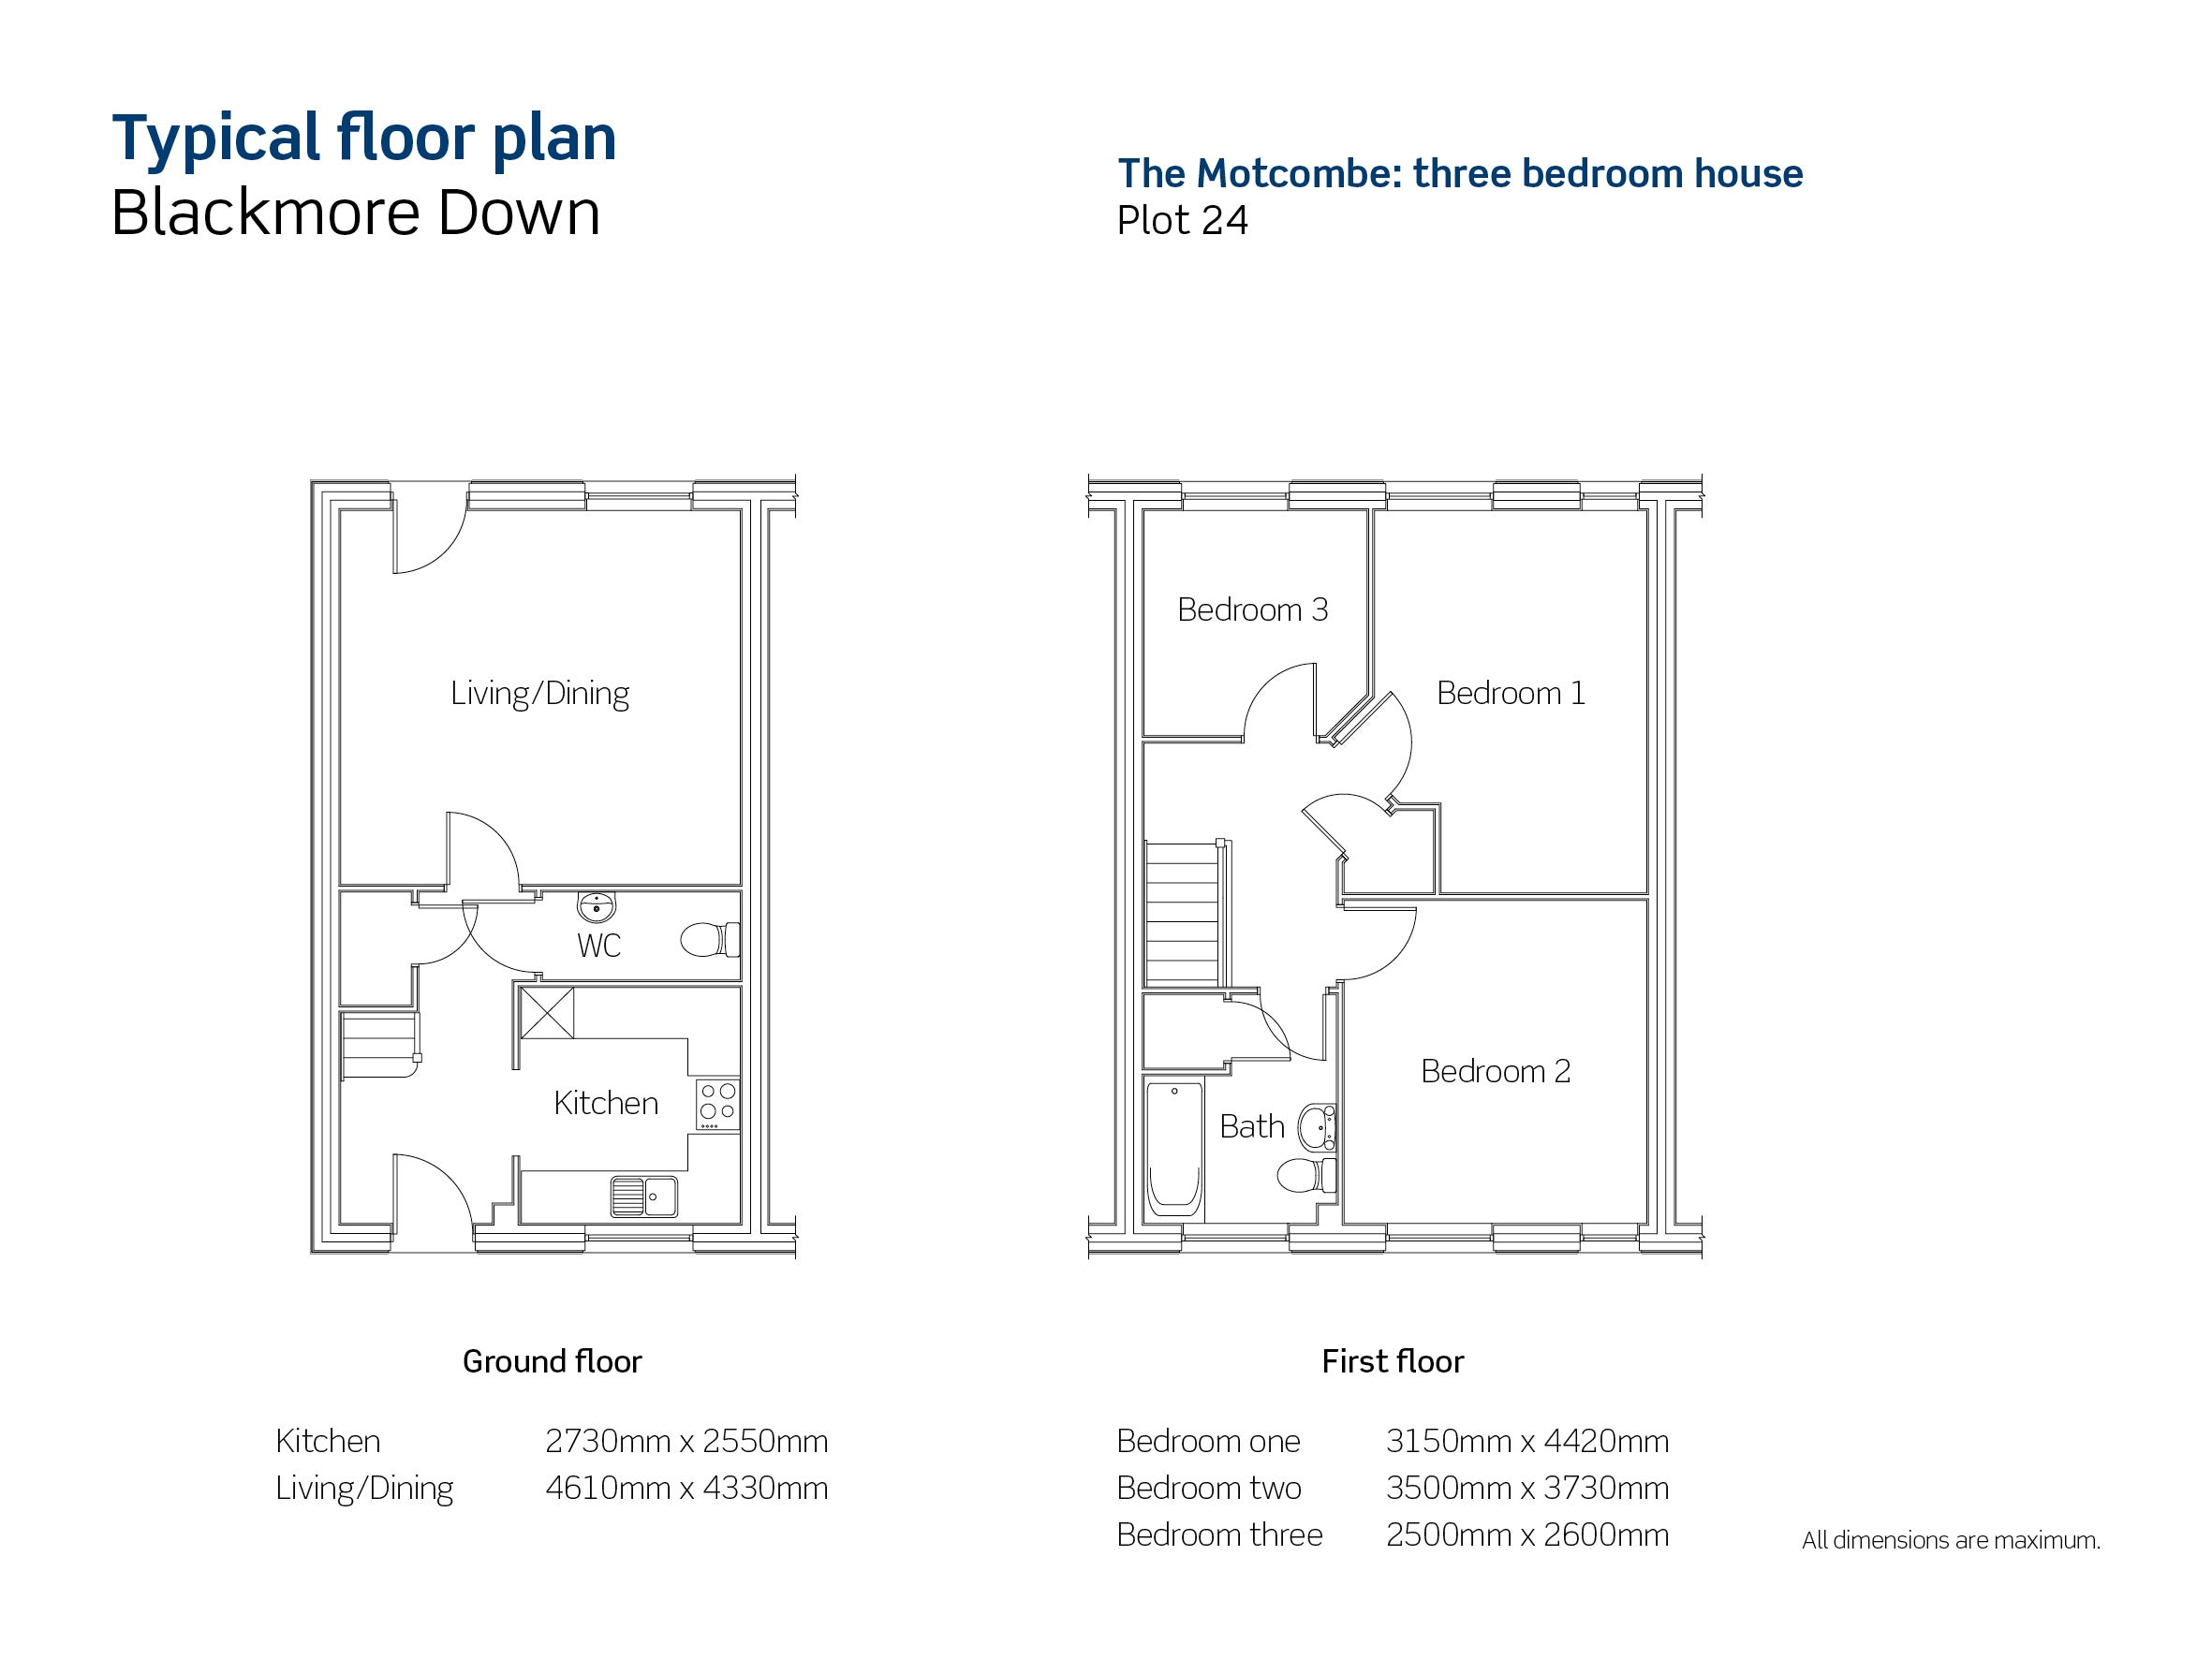 Drawing of Blackmore Down The Motcombe floor plan